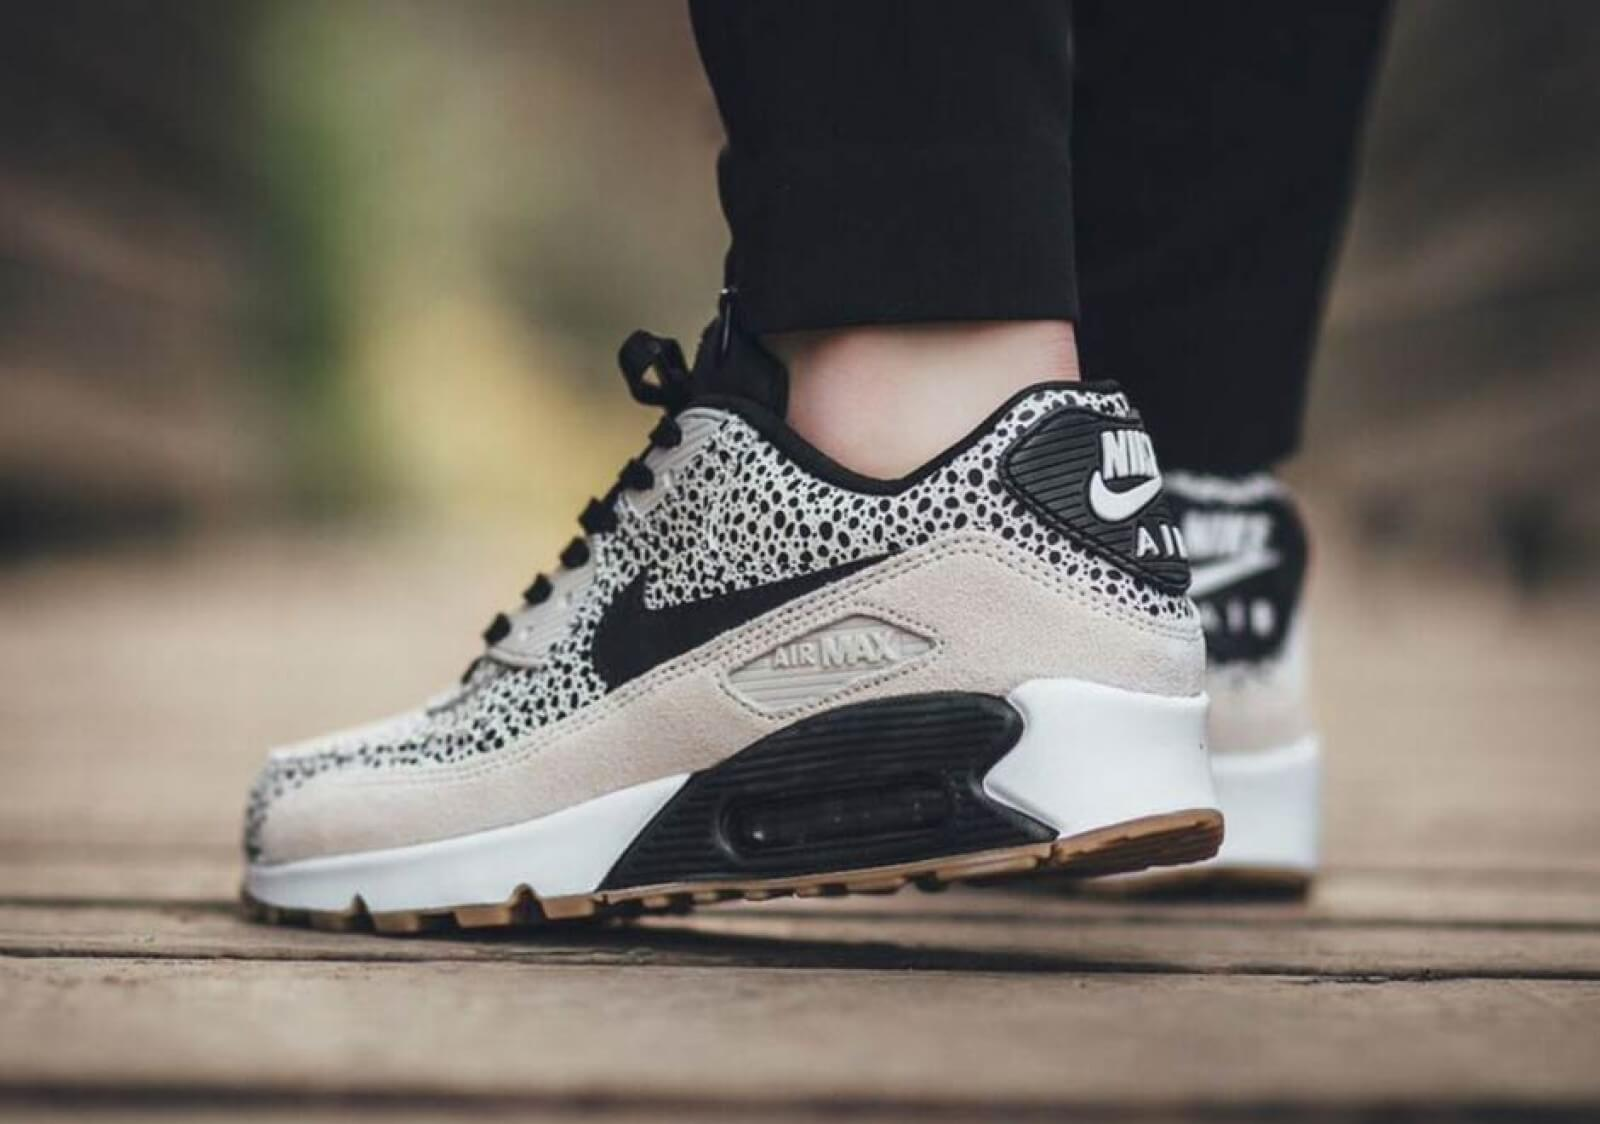 Nike Wmns Air Max 90 Prm White Black Gum Light Brown